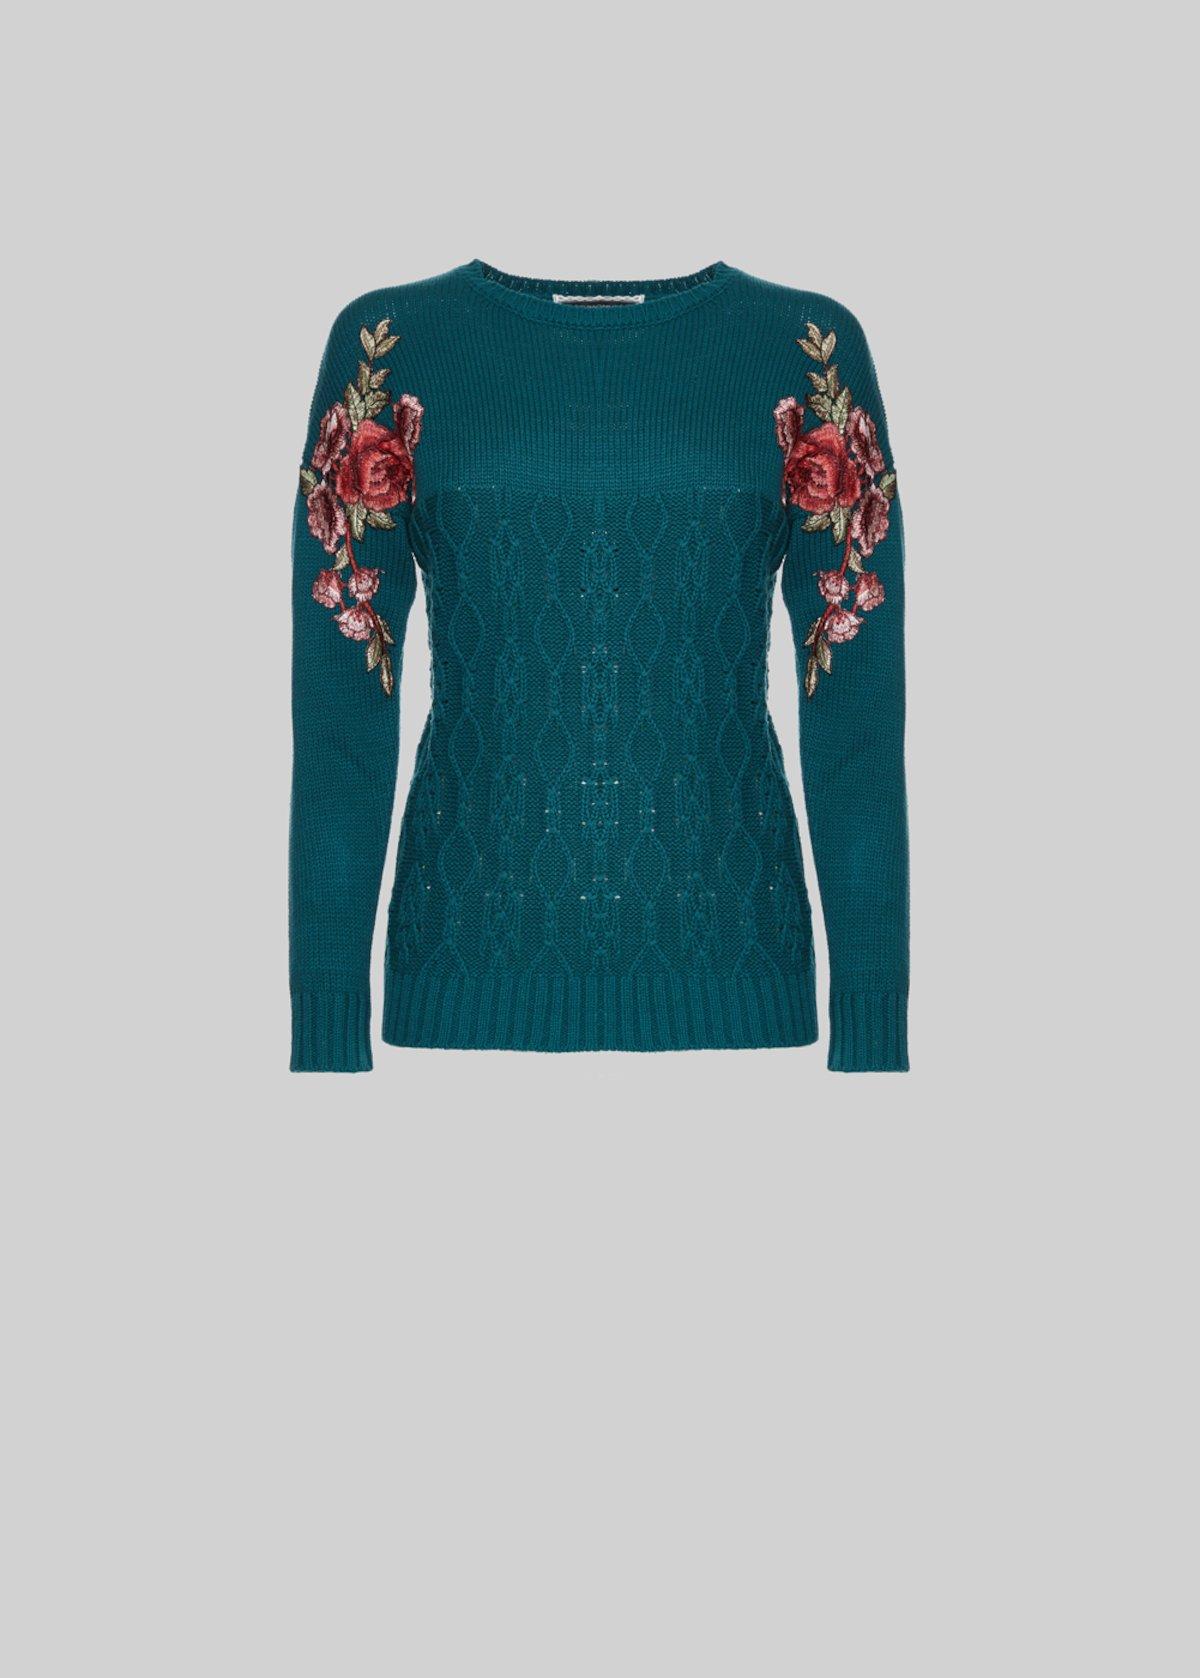 Marbella sweater with flower patch detail - Duck